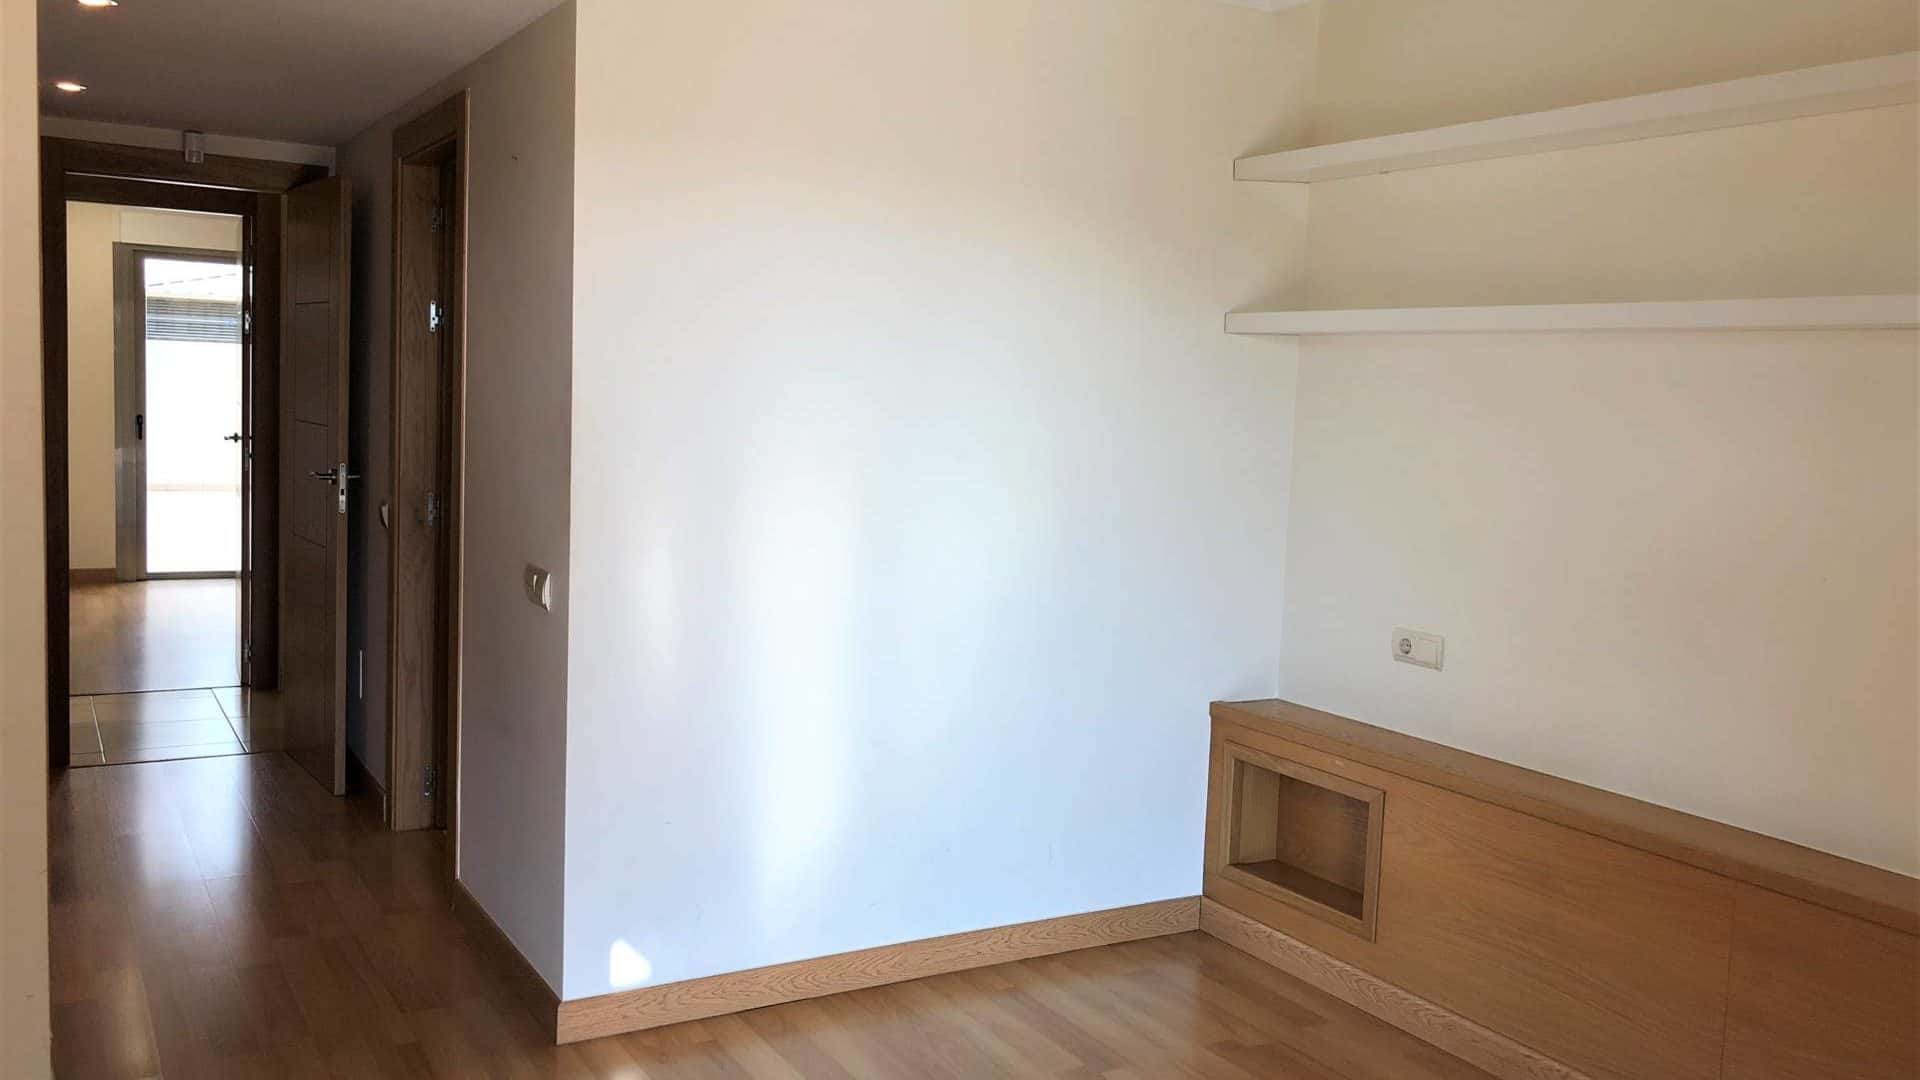 3 bedroom apartment Es vive with private pool long term rental